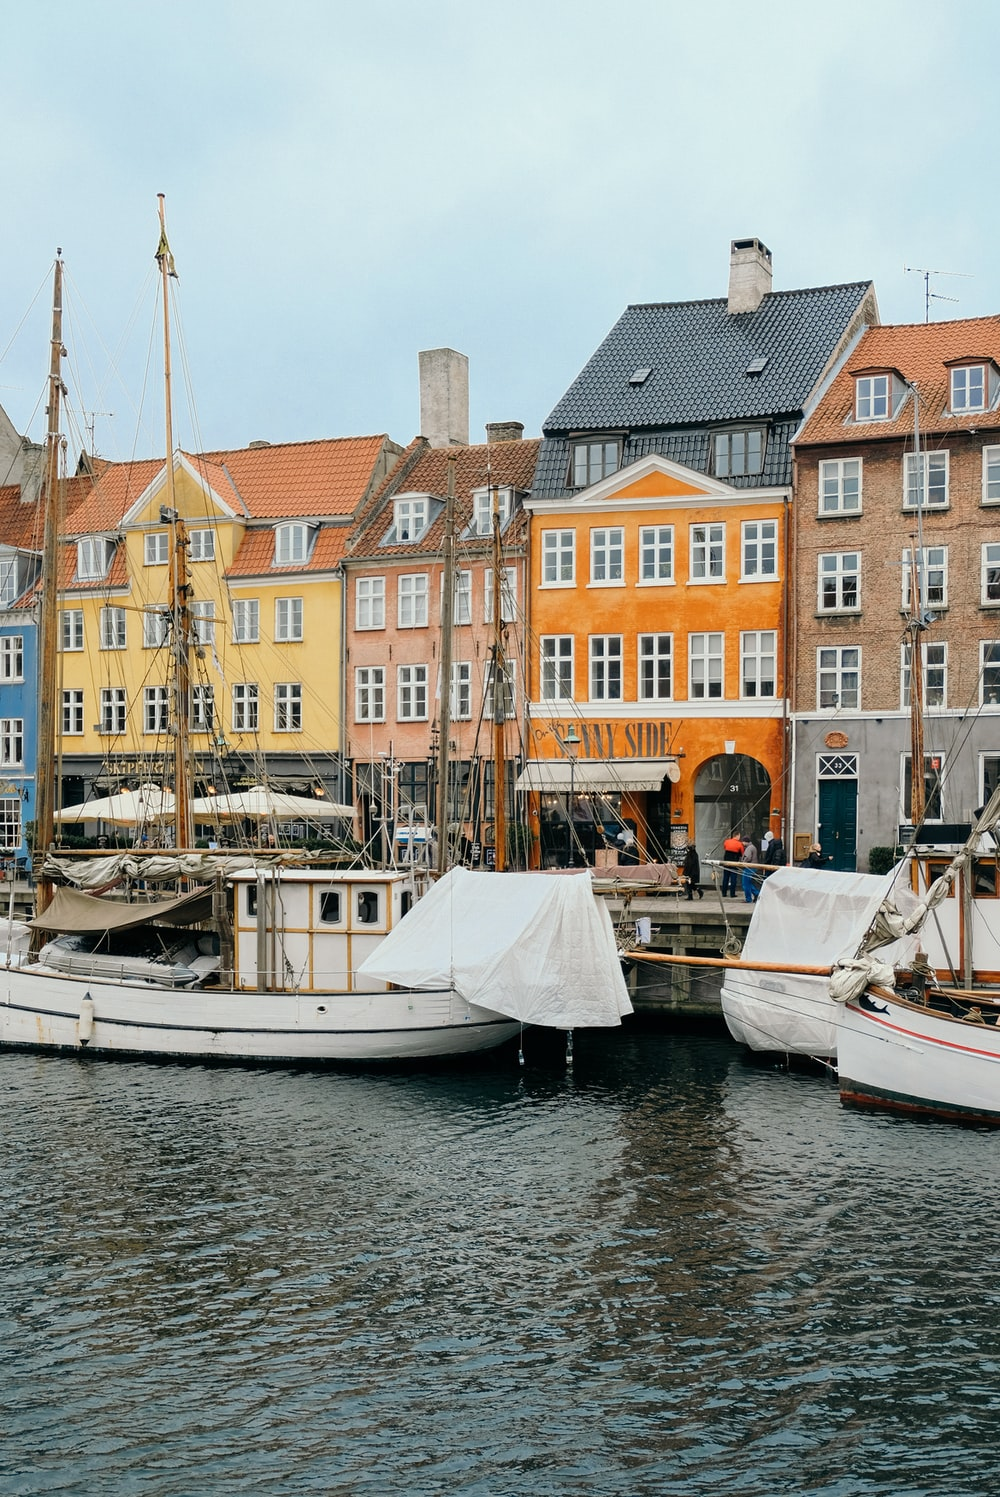 white wooden boats docks near assorted-color concrete houses during daytime